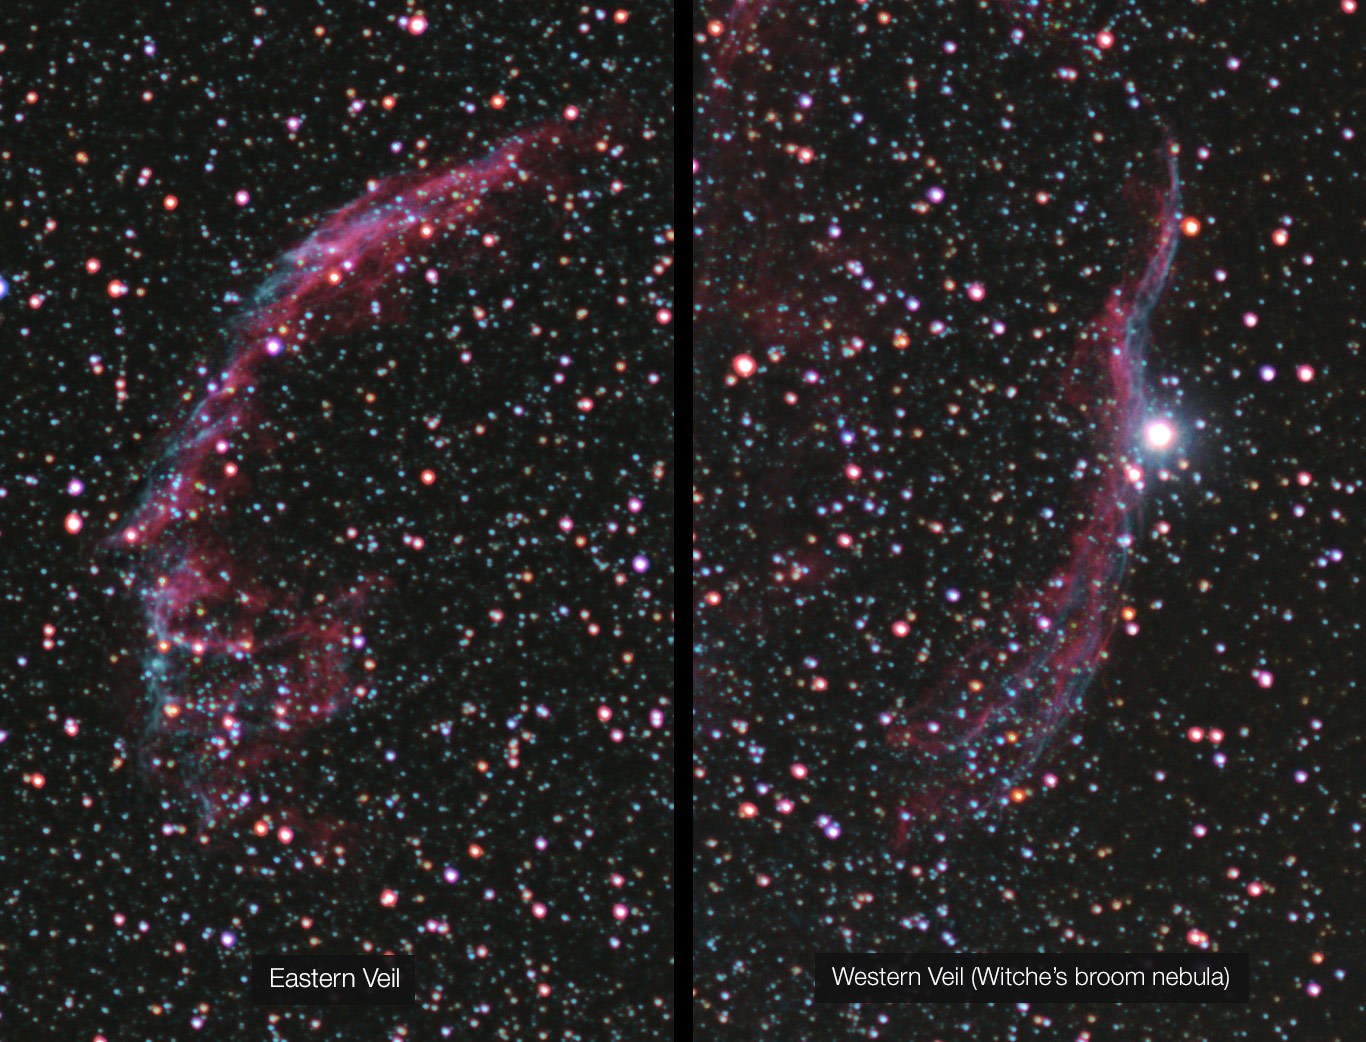 Eastern and Western Veil nebula